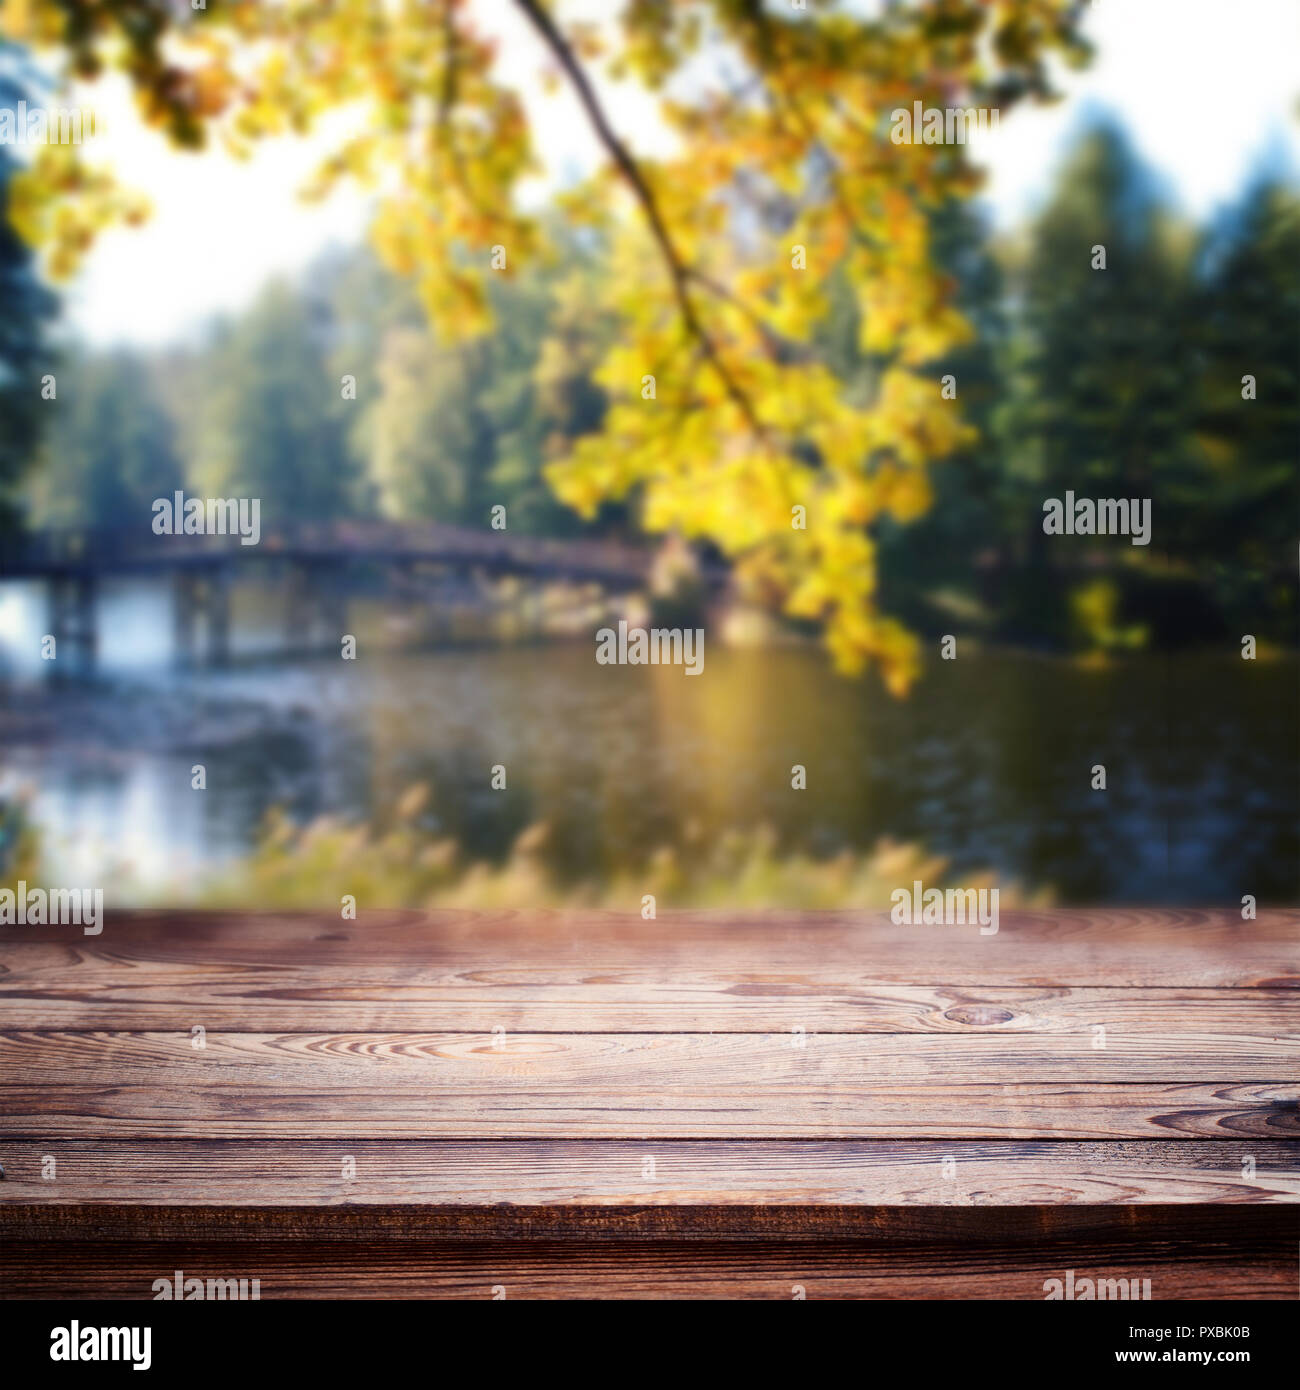 Empty Wooden Table Over Blurred Trees And River As Background Product Display Template Stock Photo Alamy